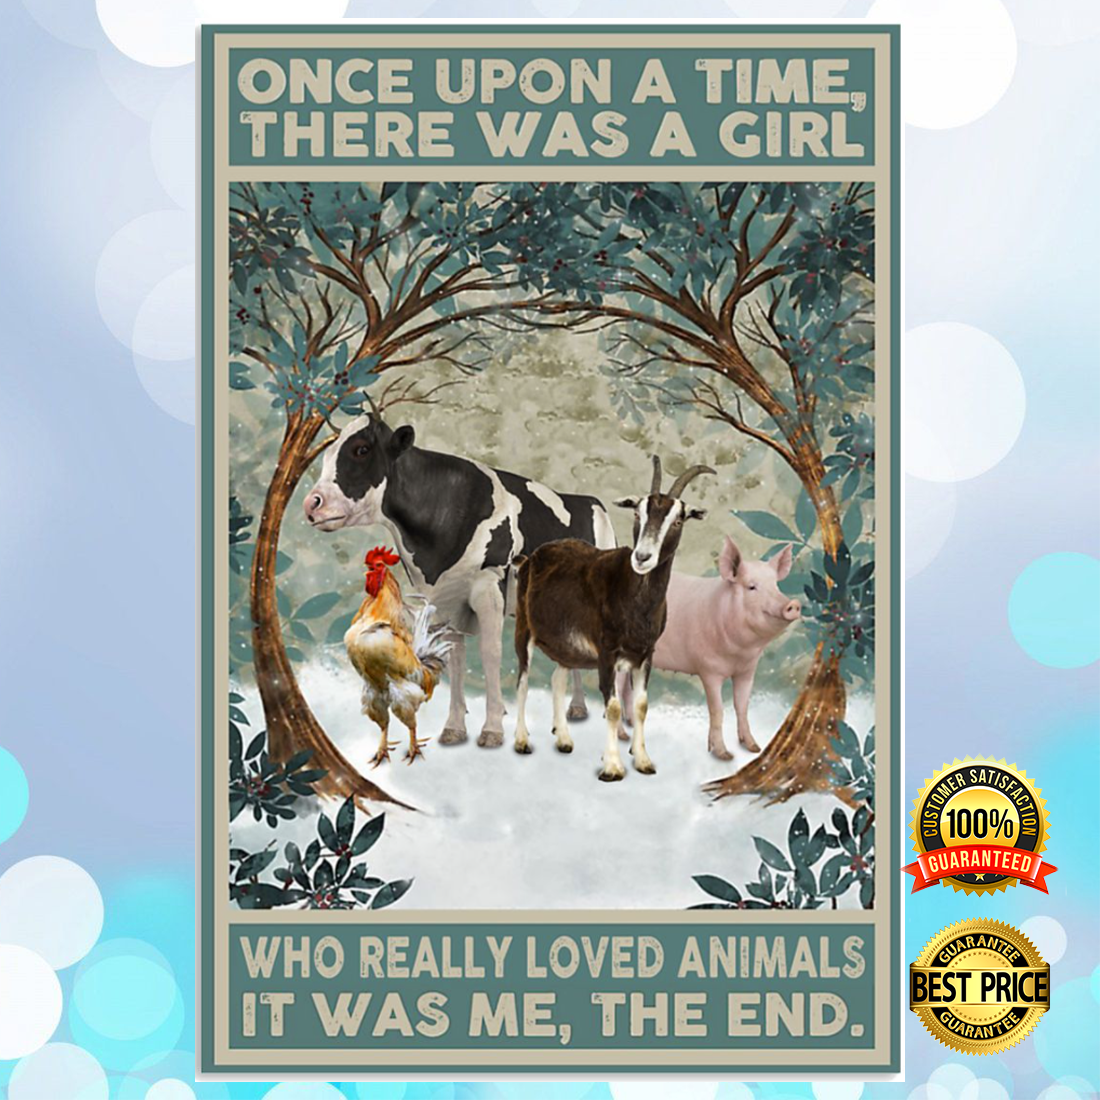 Once upon a time there was a girl who really loved animals it was me the end poster 5